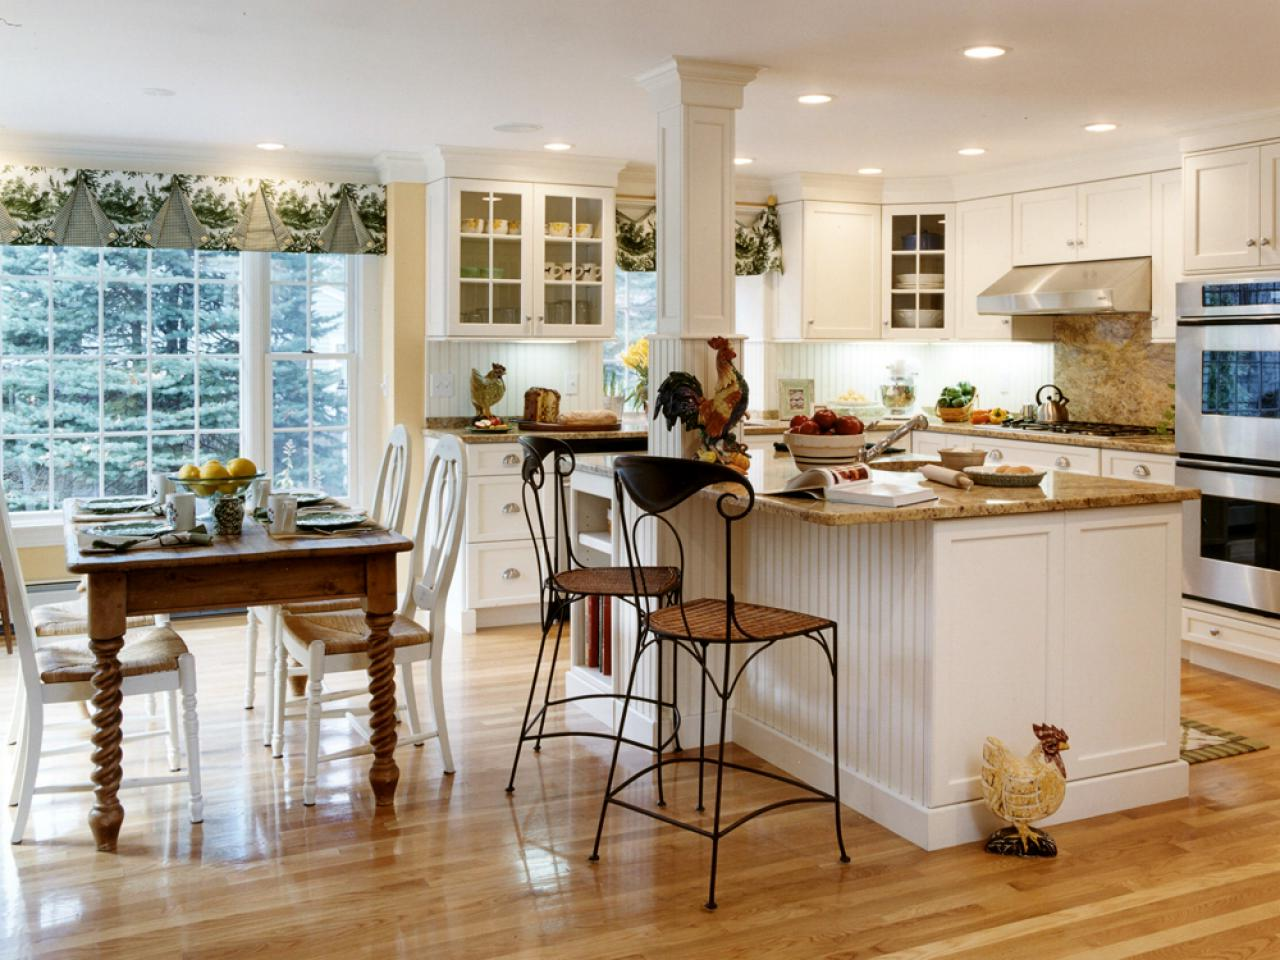 kitchen design images kitchen in country style with wooden floors wooden table kitchen - Country Style Kitchen Island